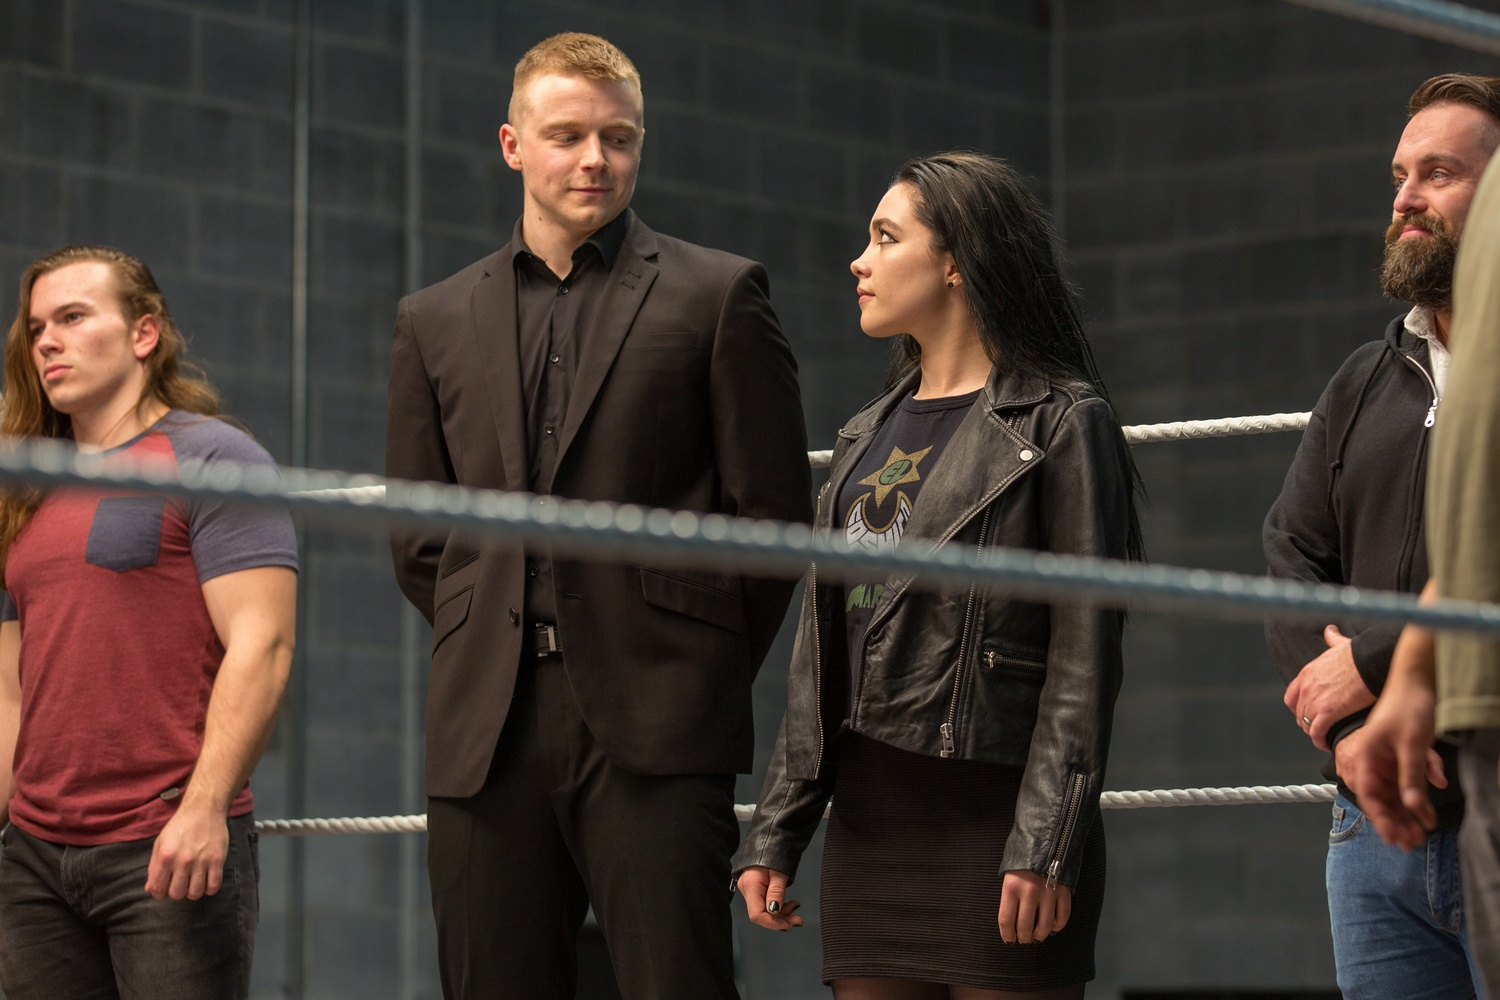 Jack Lowden (left) stars as Zak Knight and Florence Pugh (right) stars as Paige in FIGHTING WITH MY FAMILY, directed by Stephen Merchant, a Metro Goldwyn Mayer Pictures film.